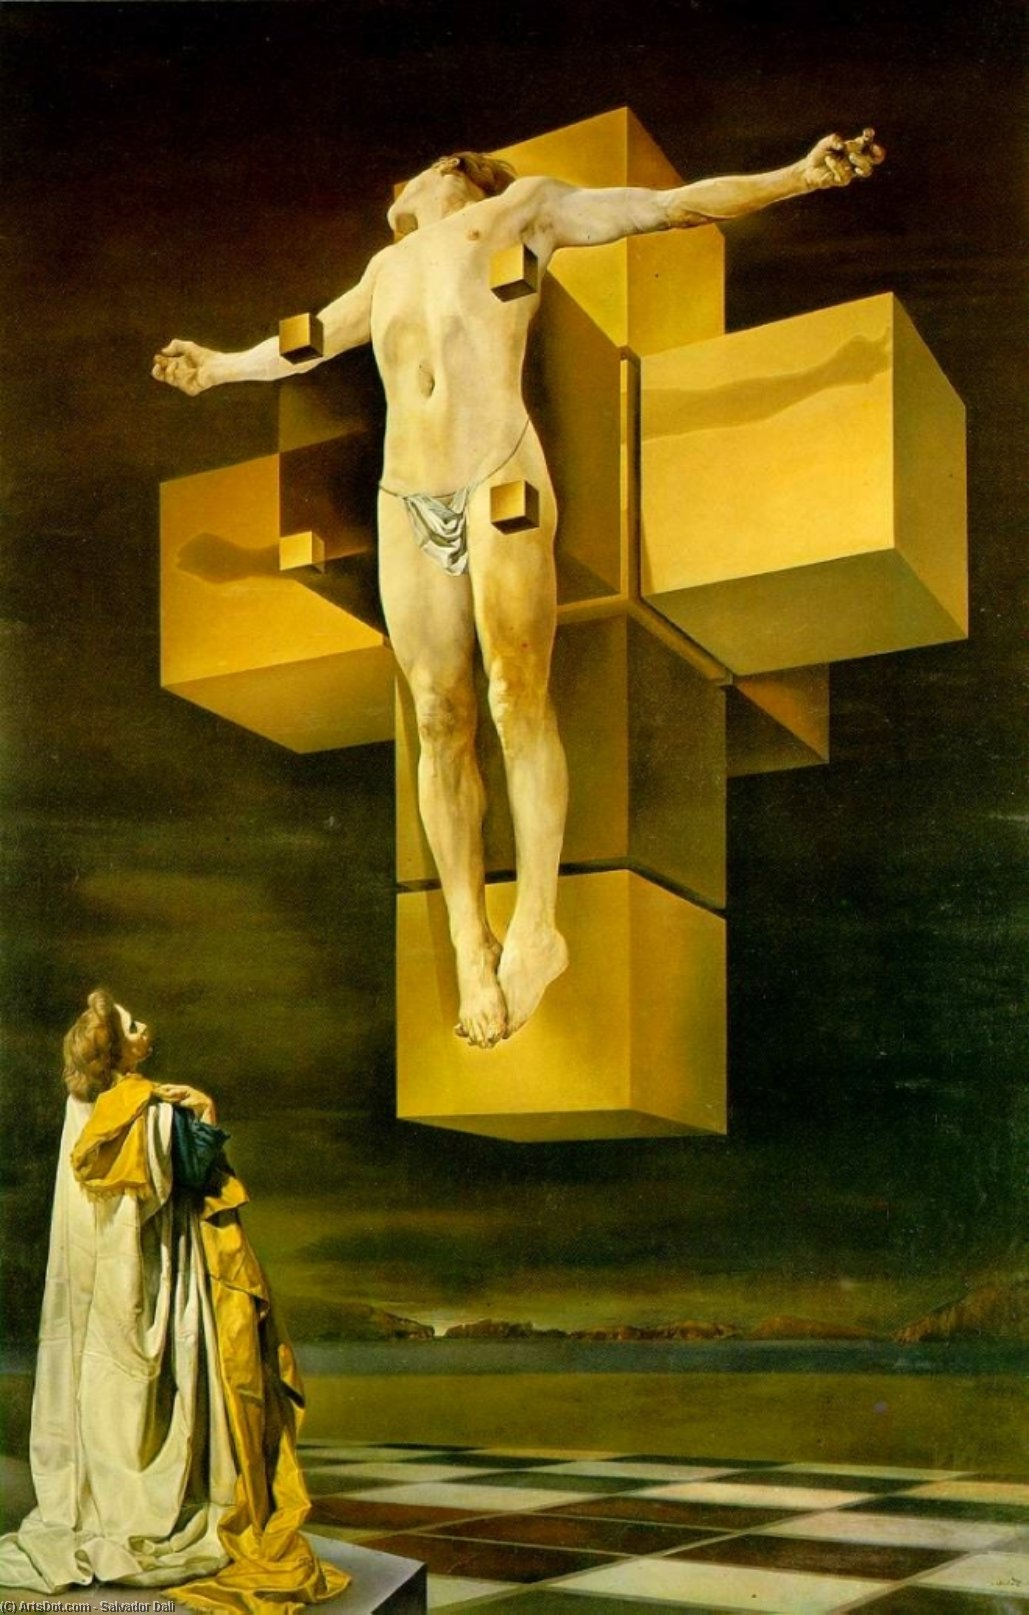 Wikioo.org - The Encyclopedia of Fine Arts - Painting, Artwork by Salvador Dali - Crucifixion (Hypercubic Body)